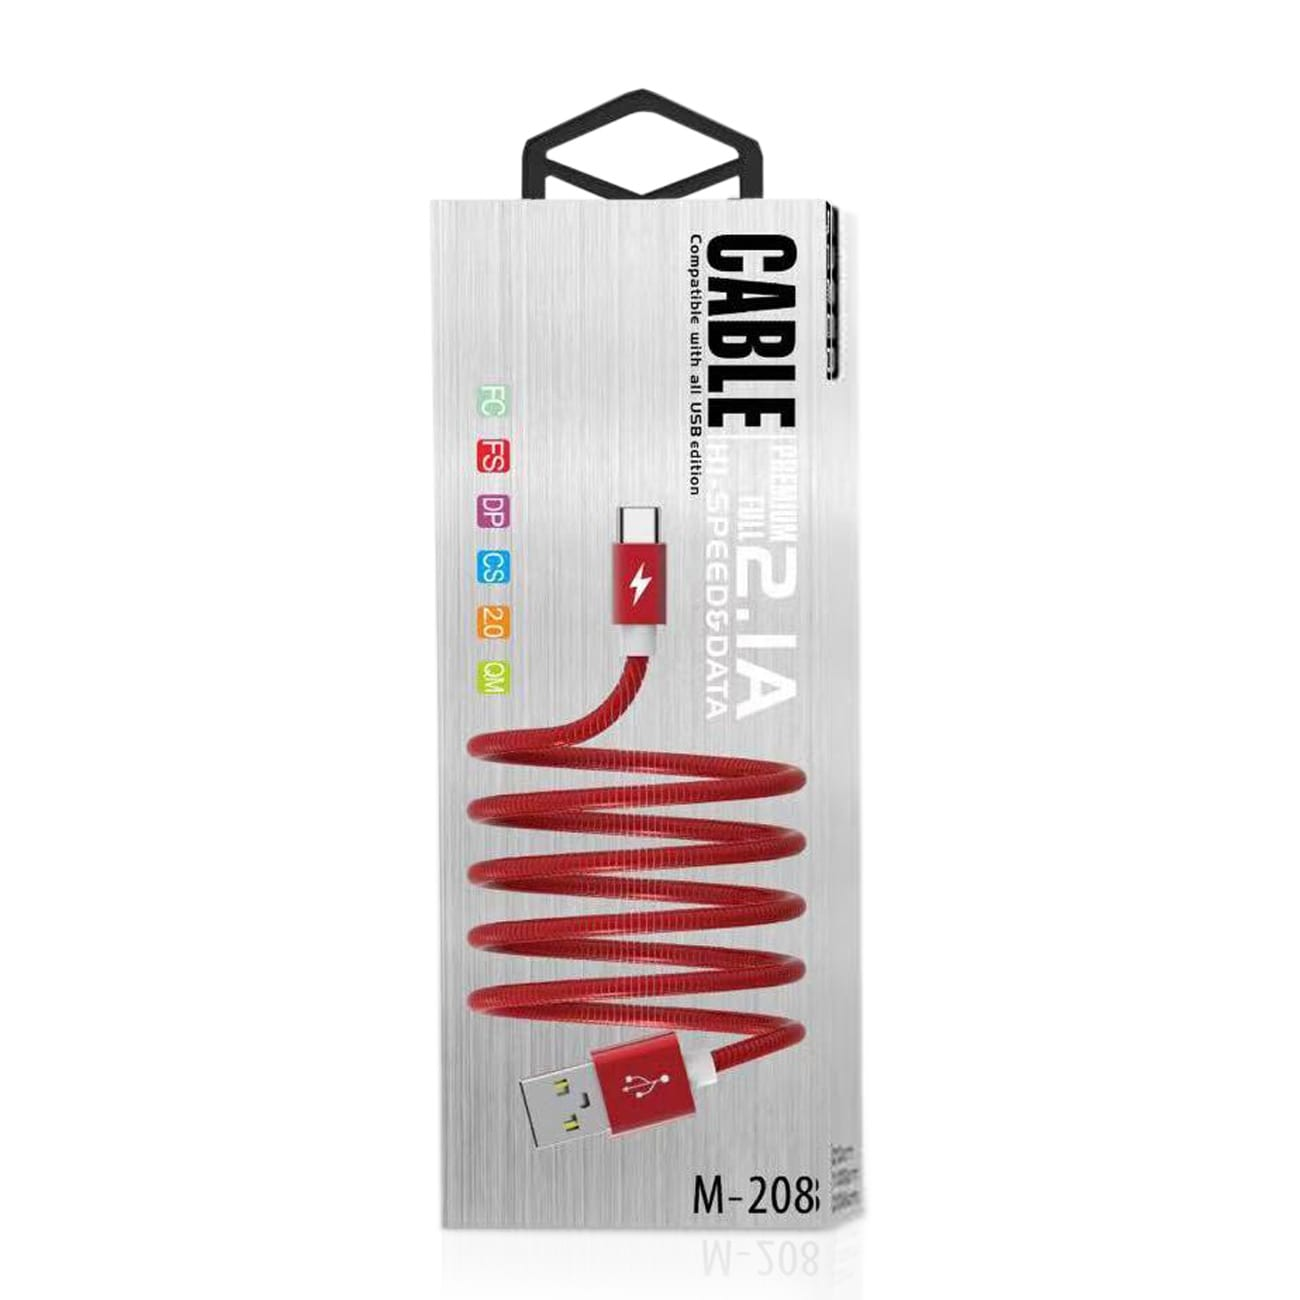 High Speed Type-C Data Cable in Red